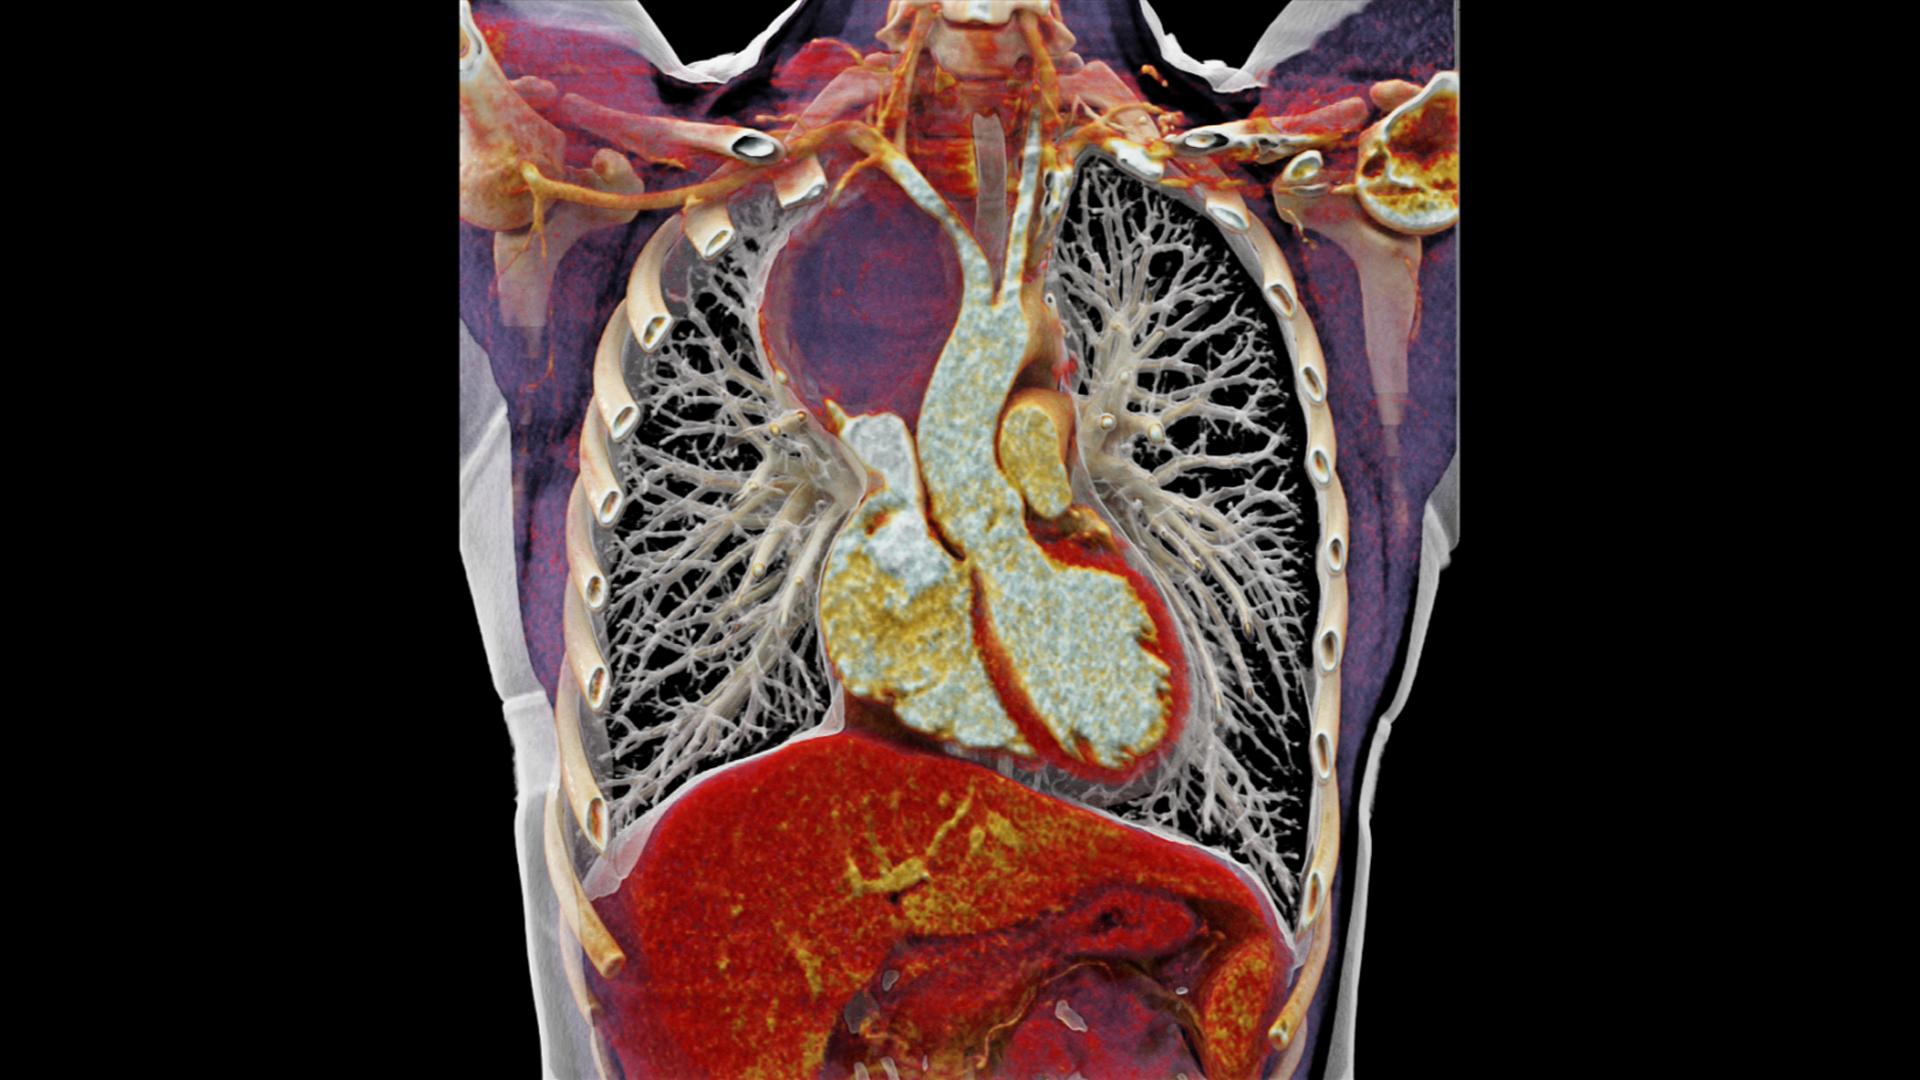 A coronal cinematic rendering image shows the craniocaudal extent of the paratracheal mass lateral to the aorta.